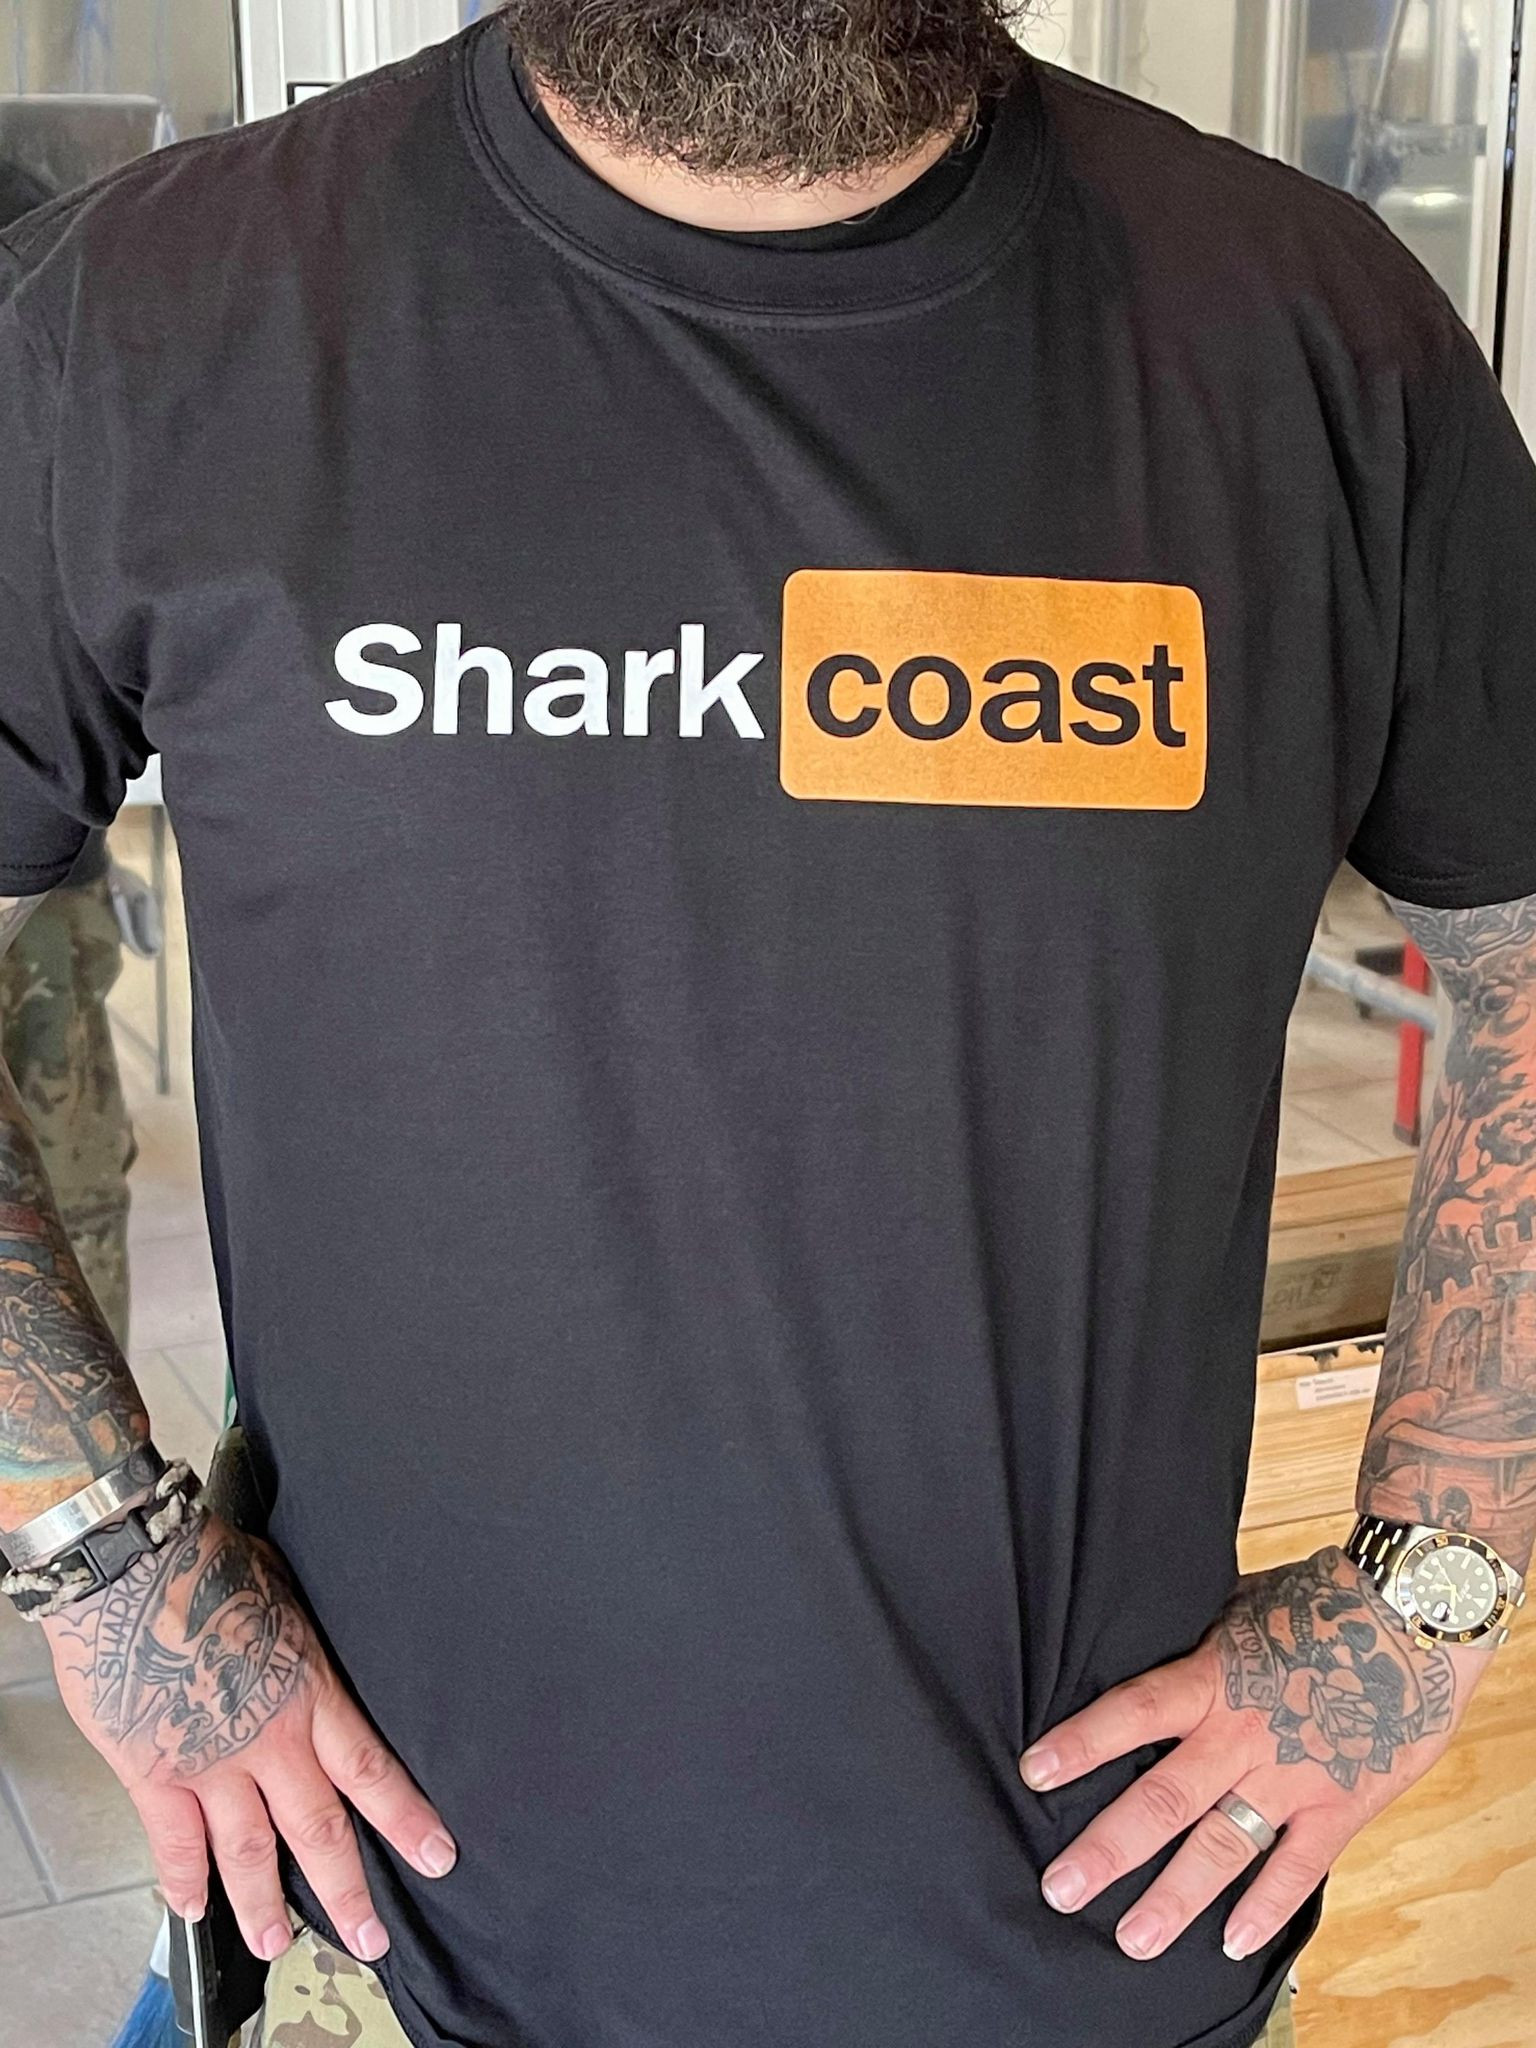 Shark Coast Tshirt